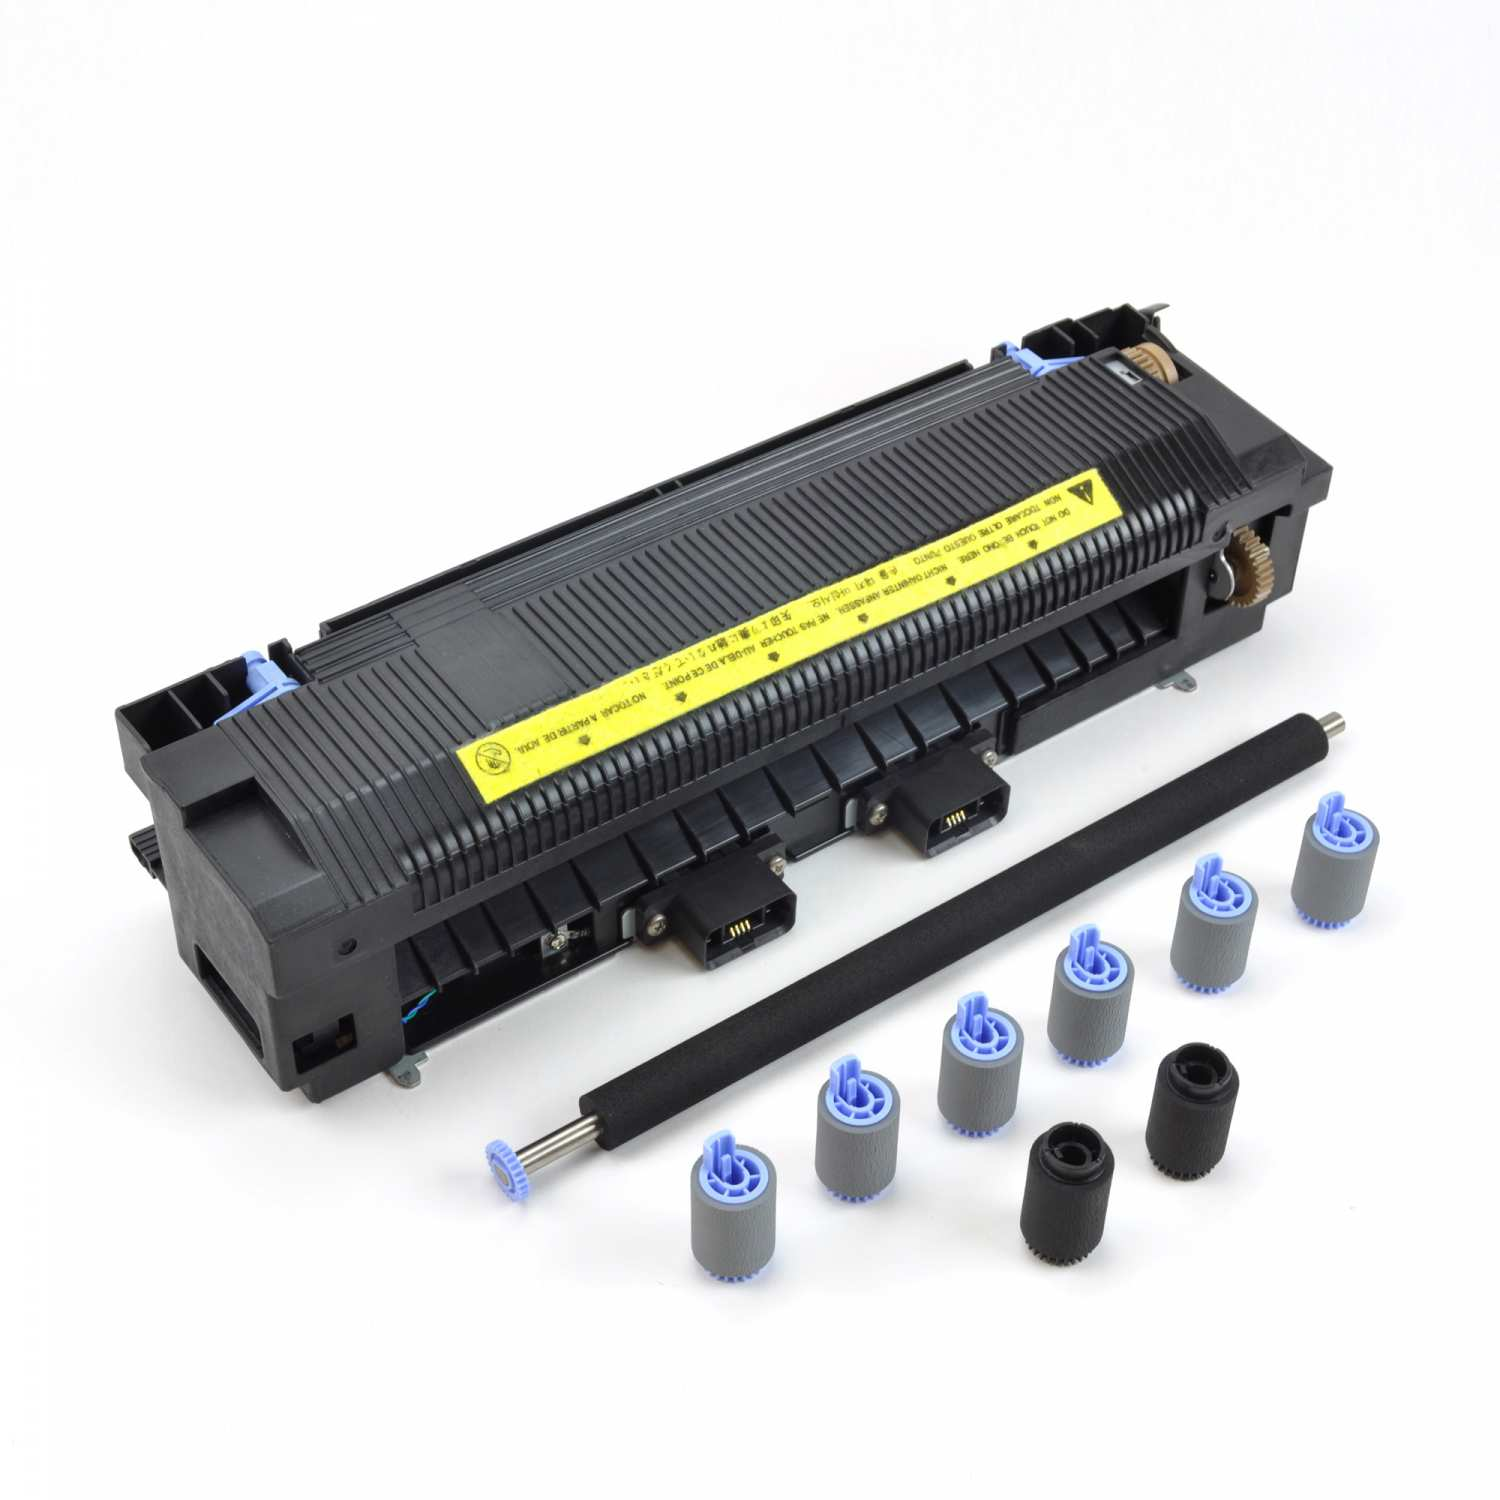 C3971-67901-AEX Maintenance Kit (110V) Exchange for HP LaserJet 5Si, LaserJet 8000